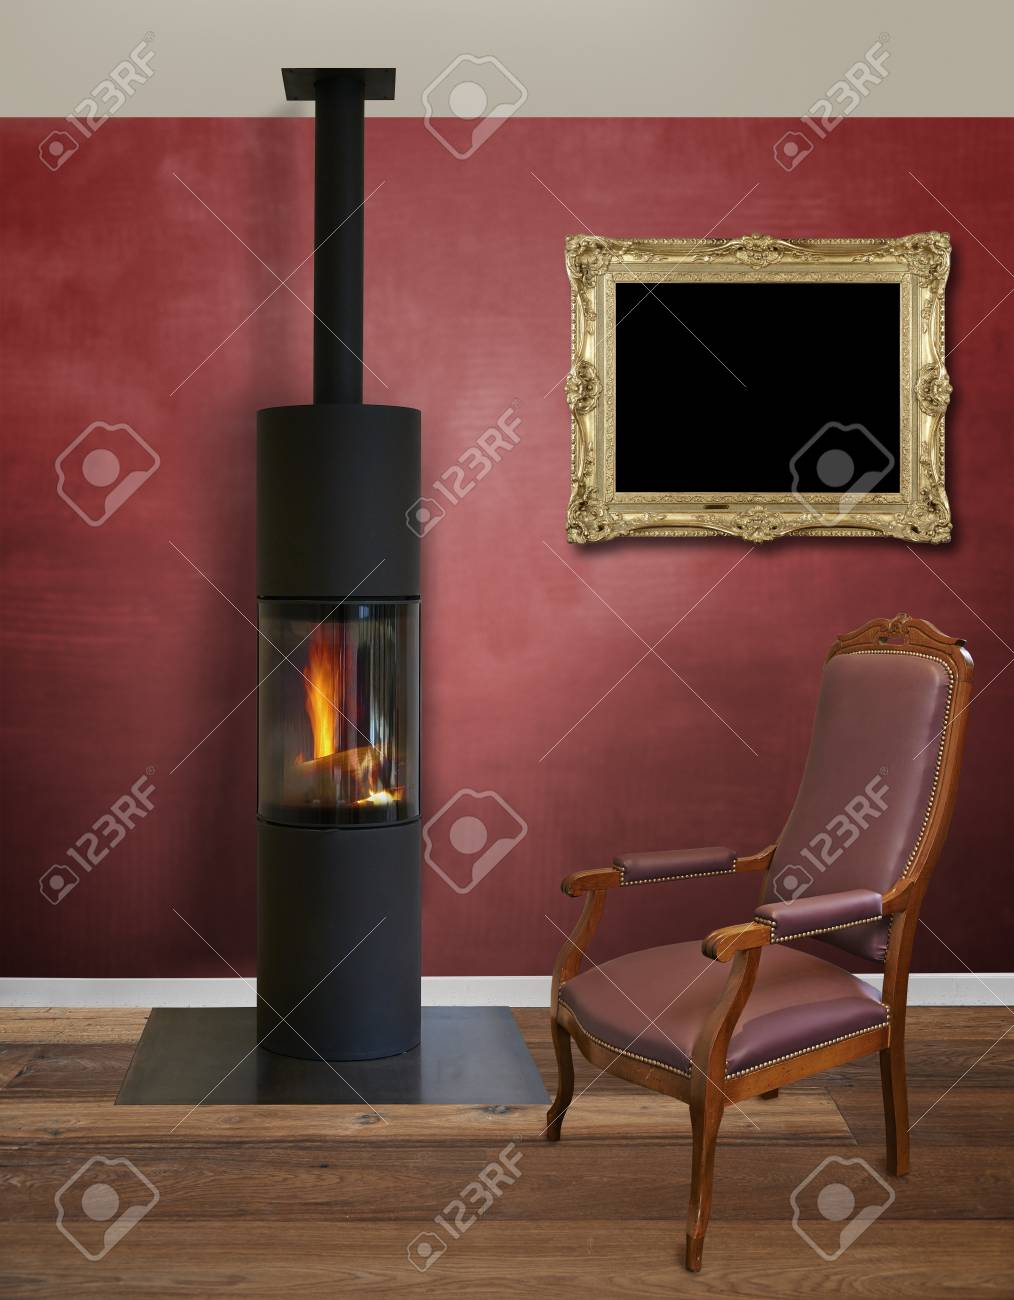 modern interior with modern wood burner against textured red stock